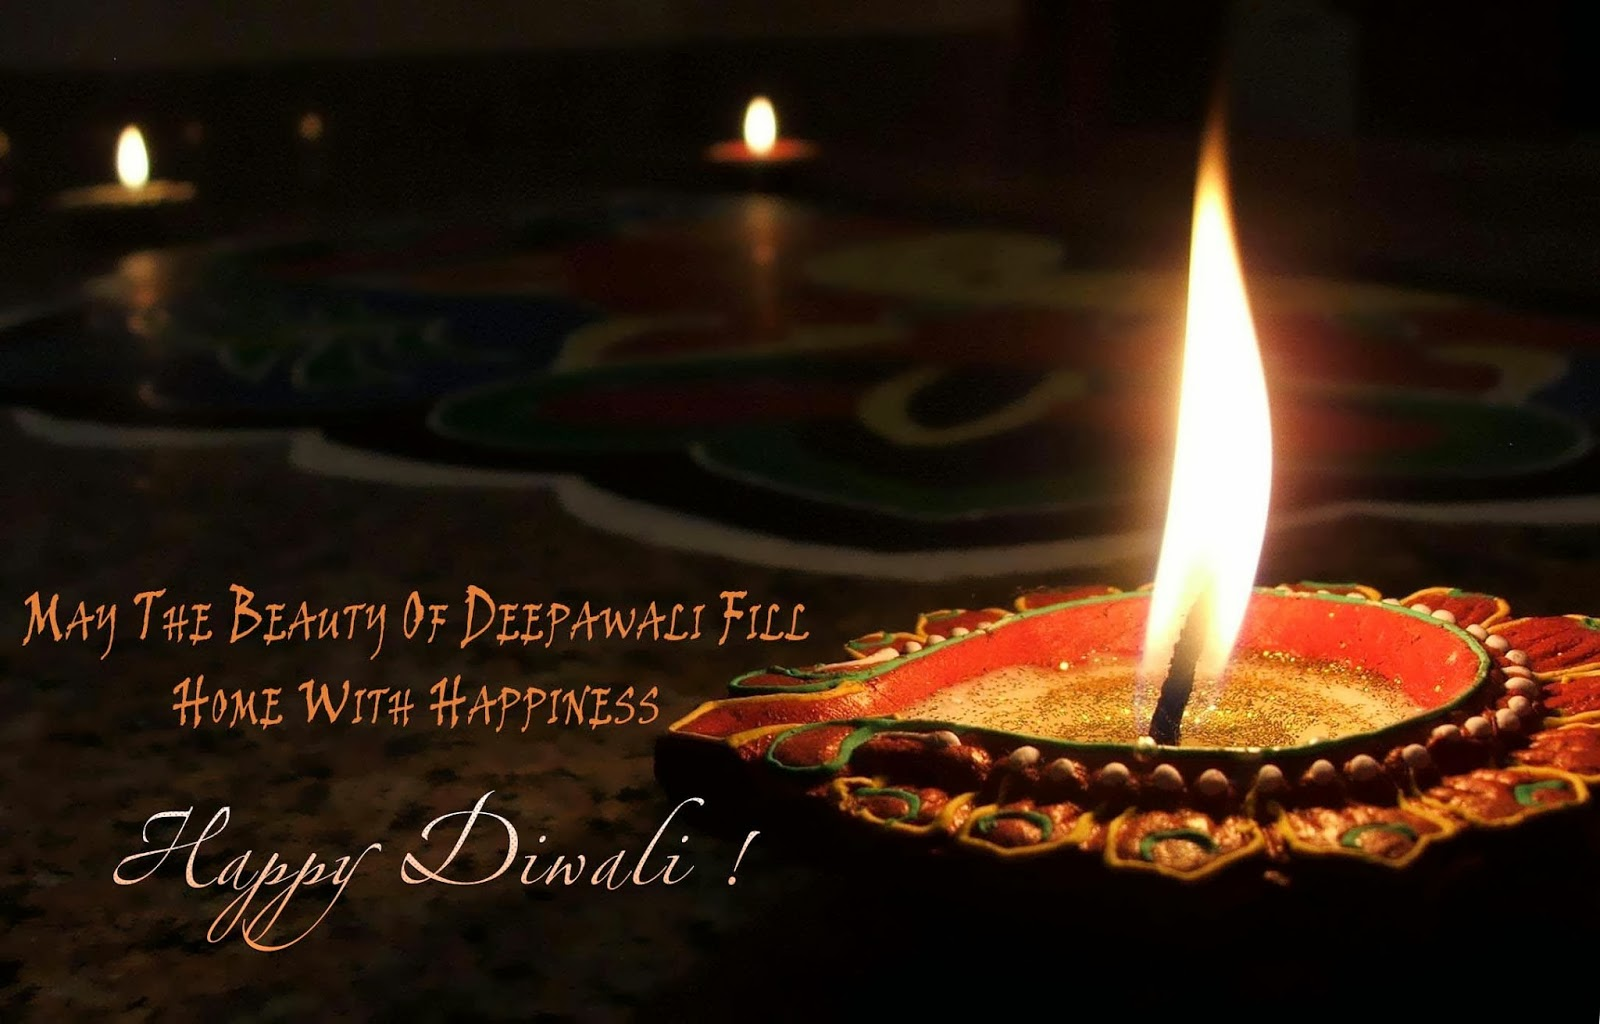 Download Deepak 2013 Photo Download for Diwali Wishes   Happy 1600x1024